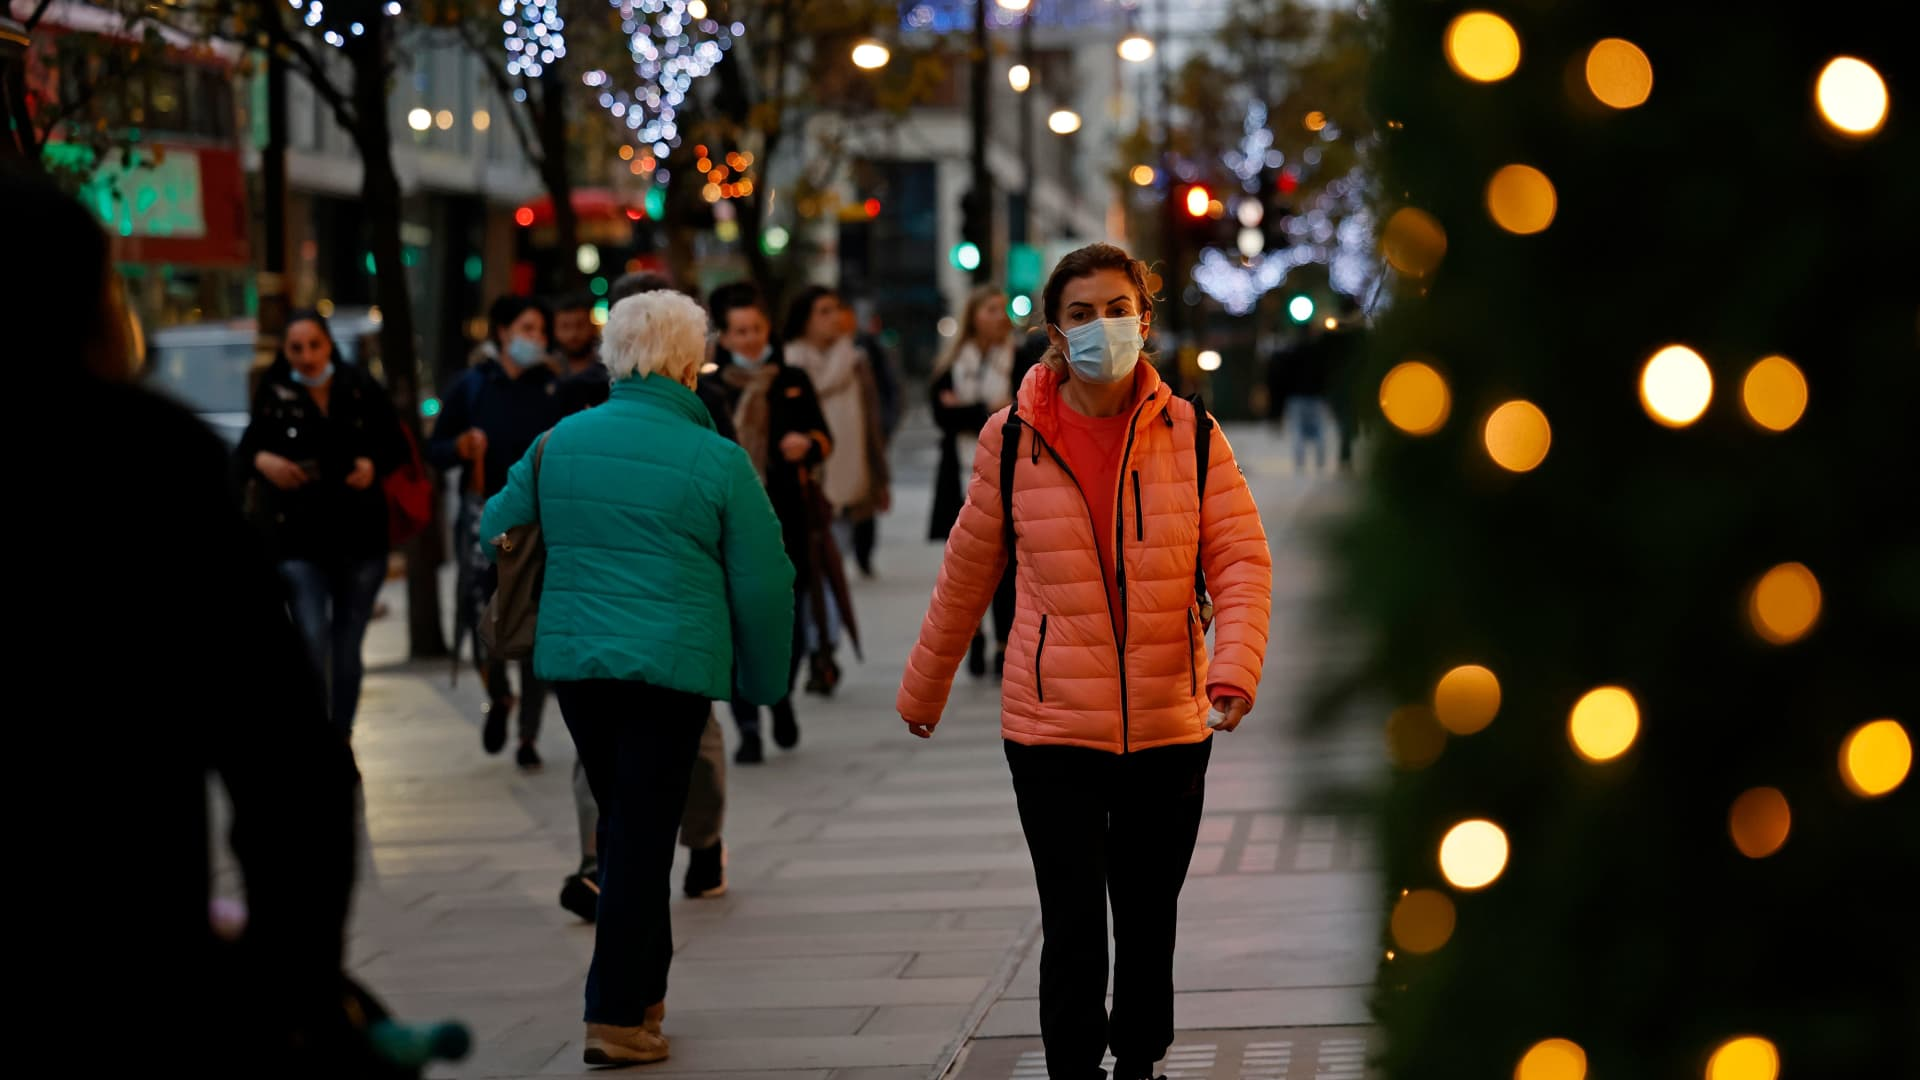 Pedestrians walk past Christmas lights on Oxford Street in central London on November 17, 2020.